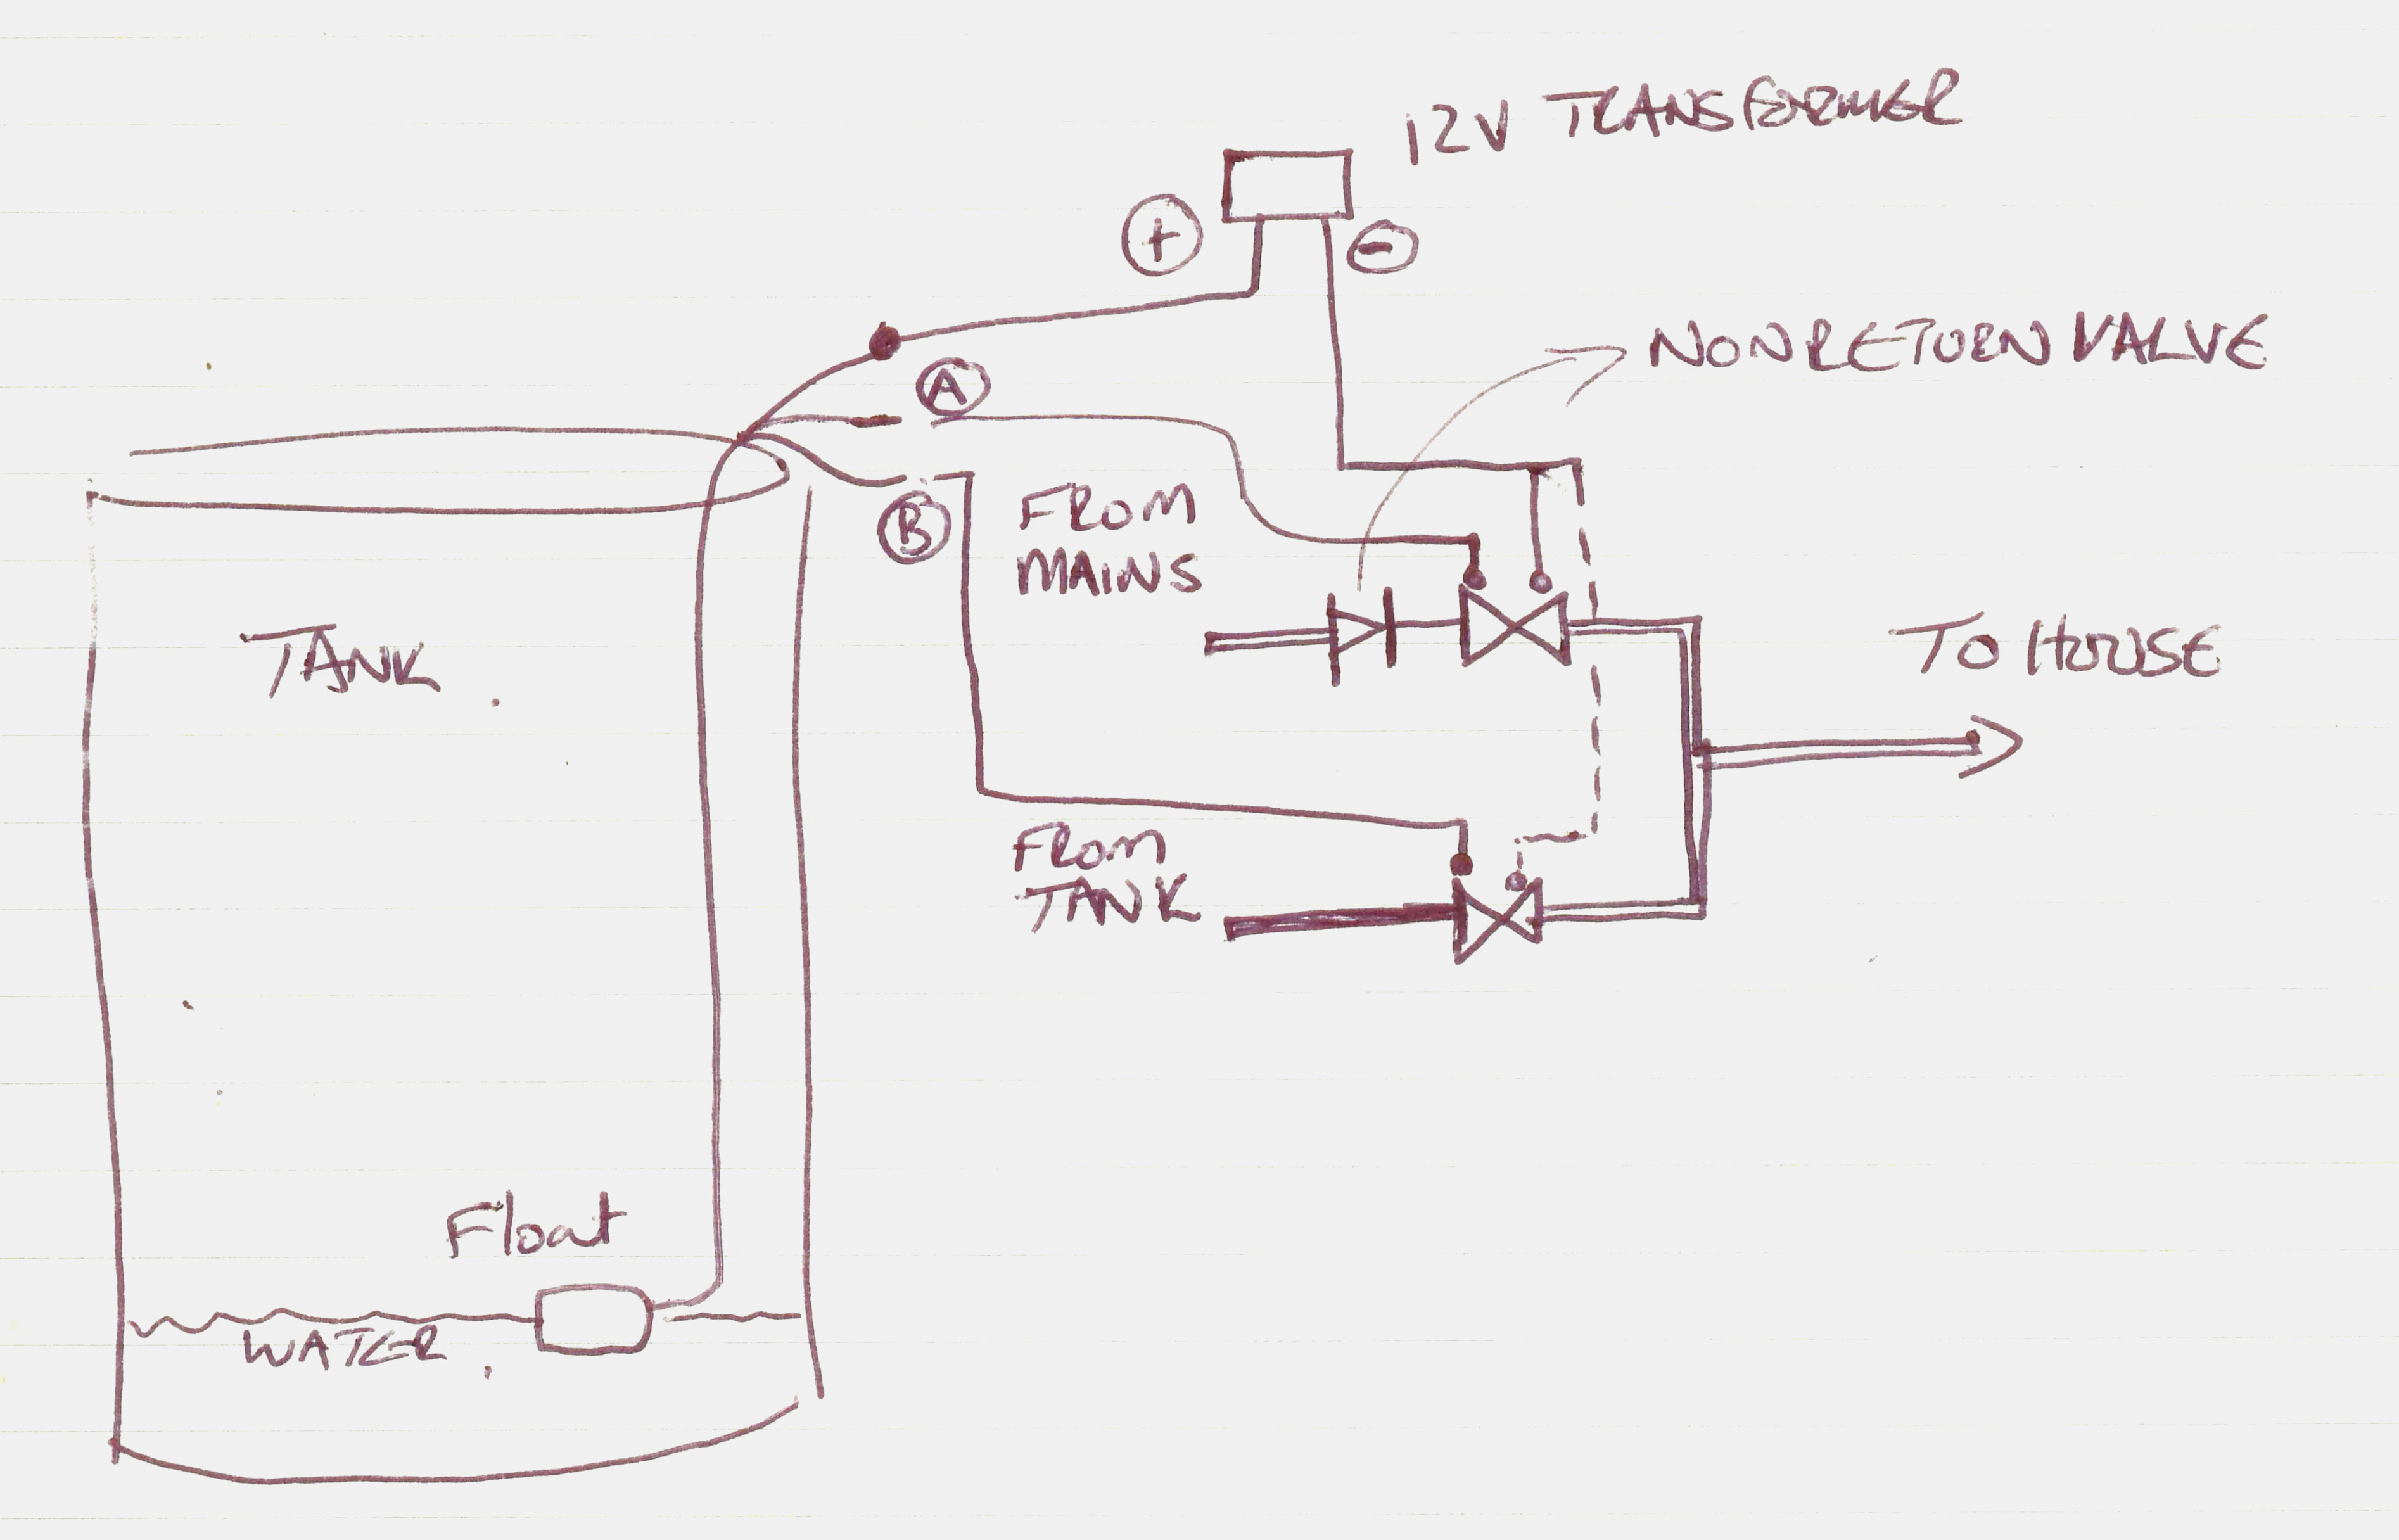 Wiring A Bilge Pump And Float Switch Diagram Free Download | Best - Bilge Pump Float Switch Wiring Diagram